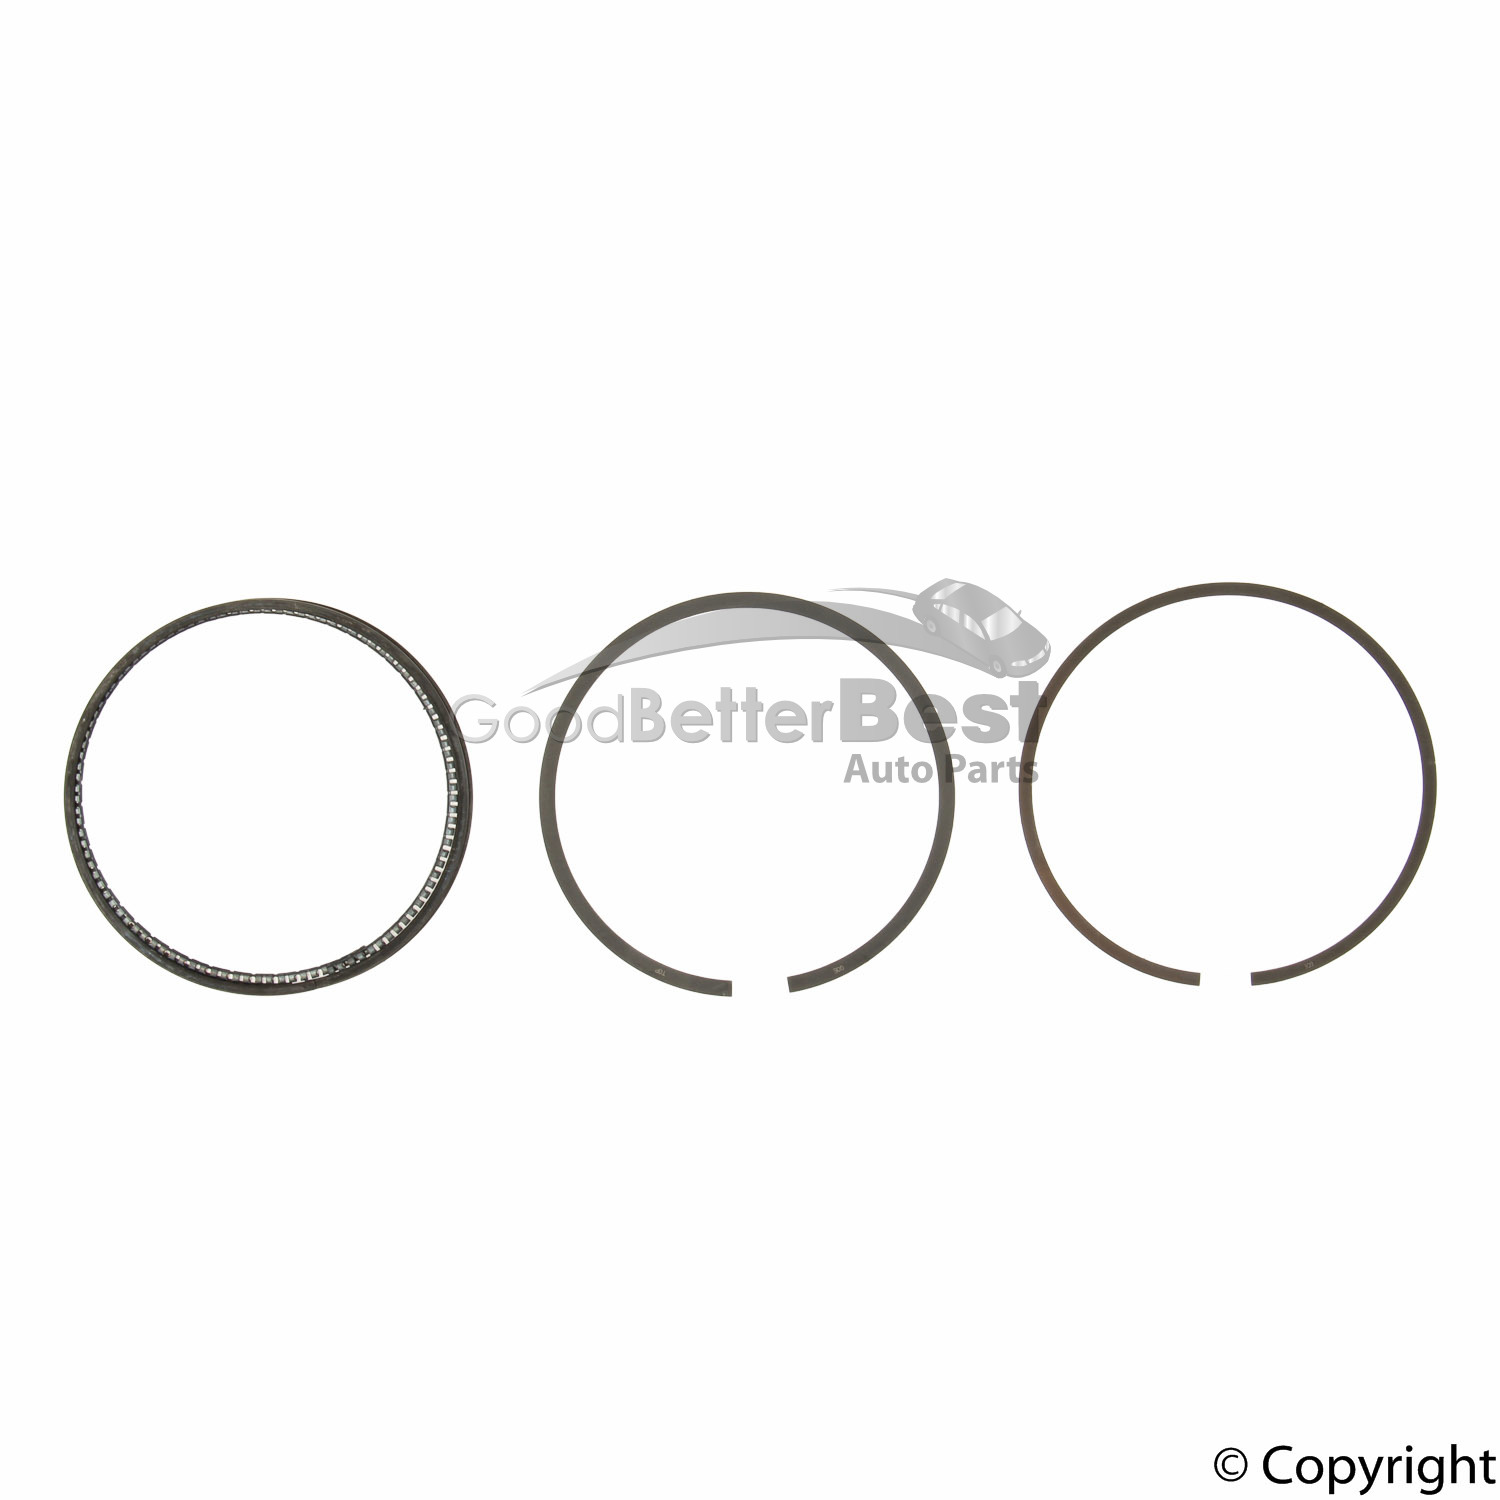 New Goetze Engine Piston Ring Set